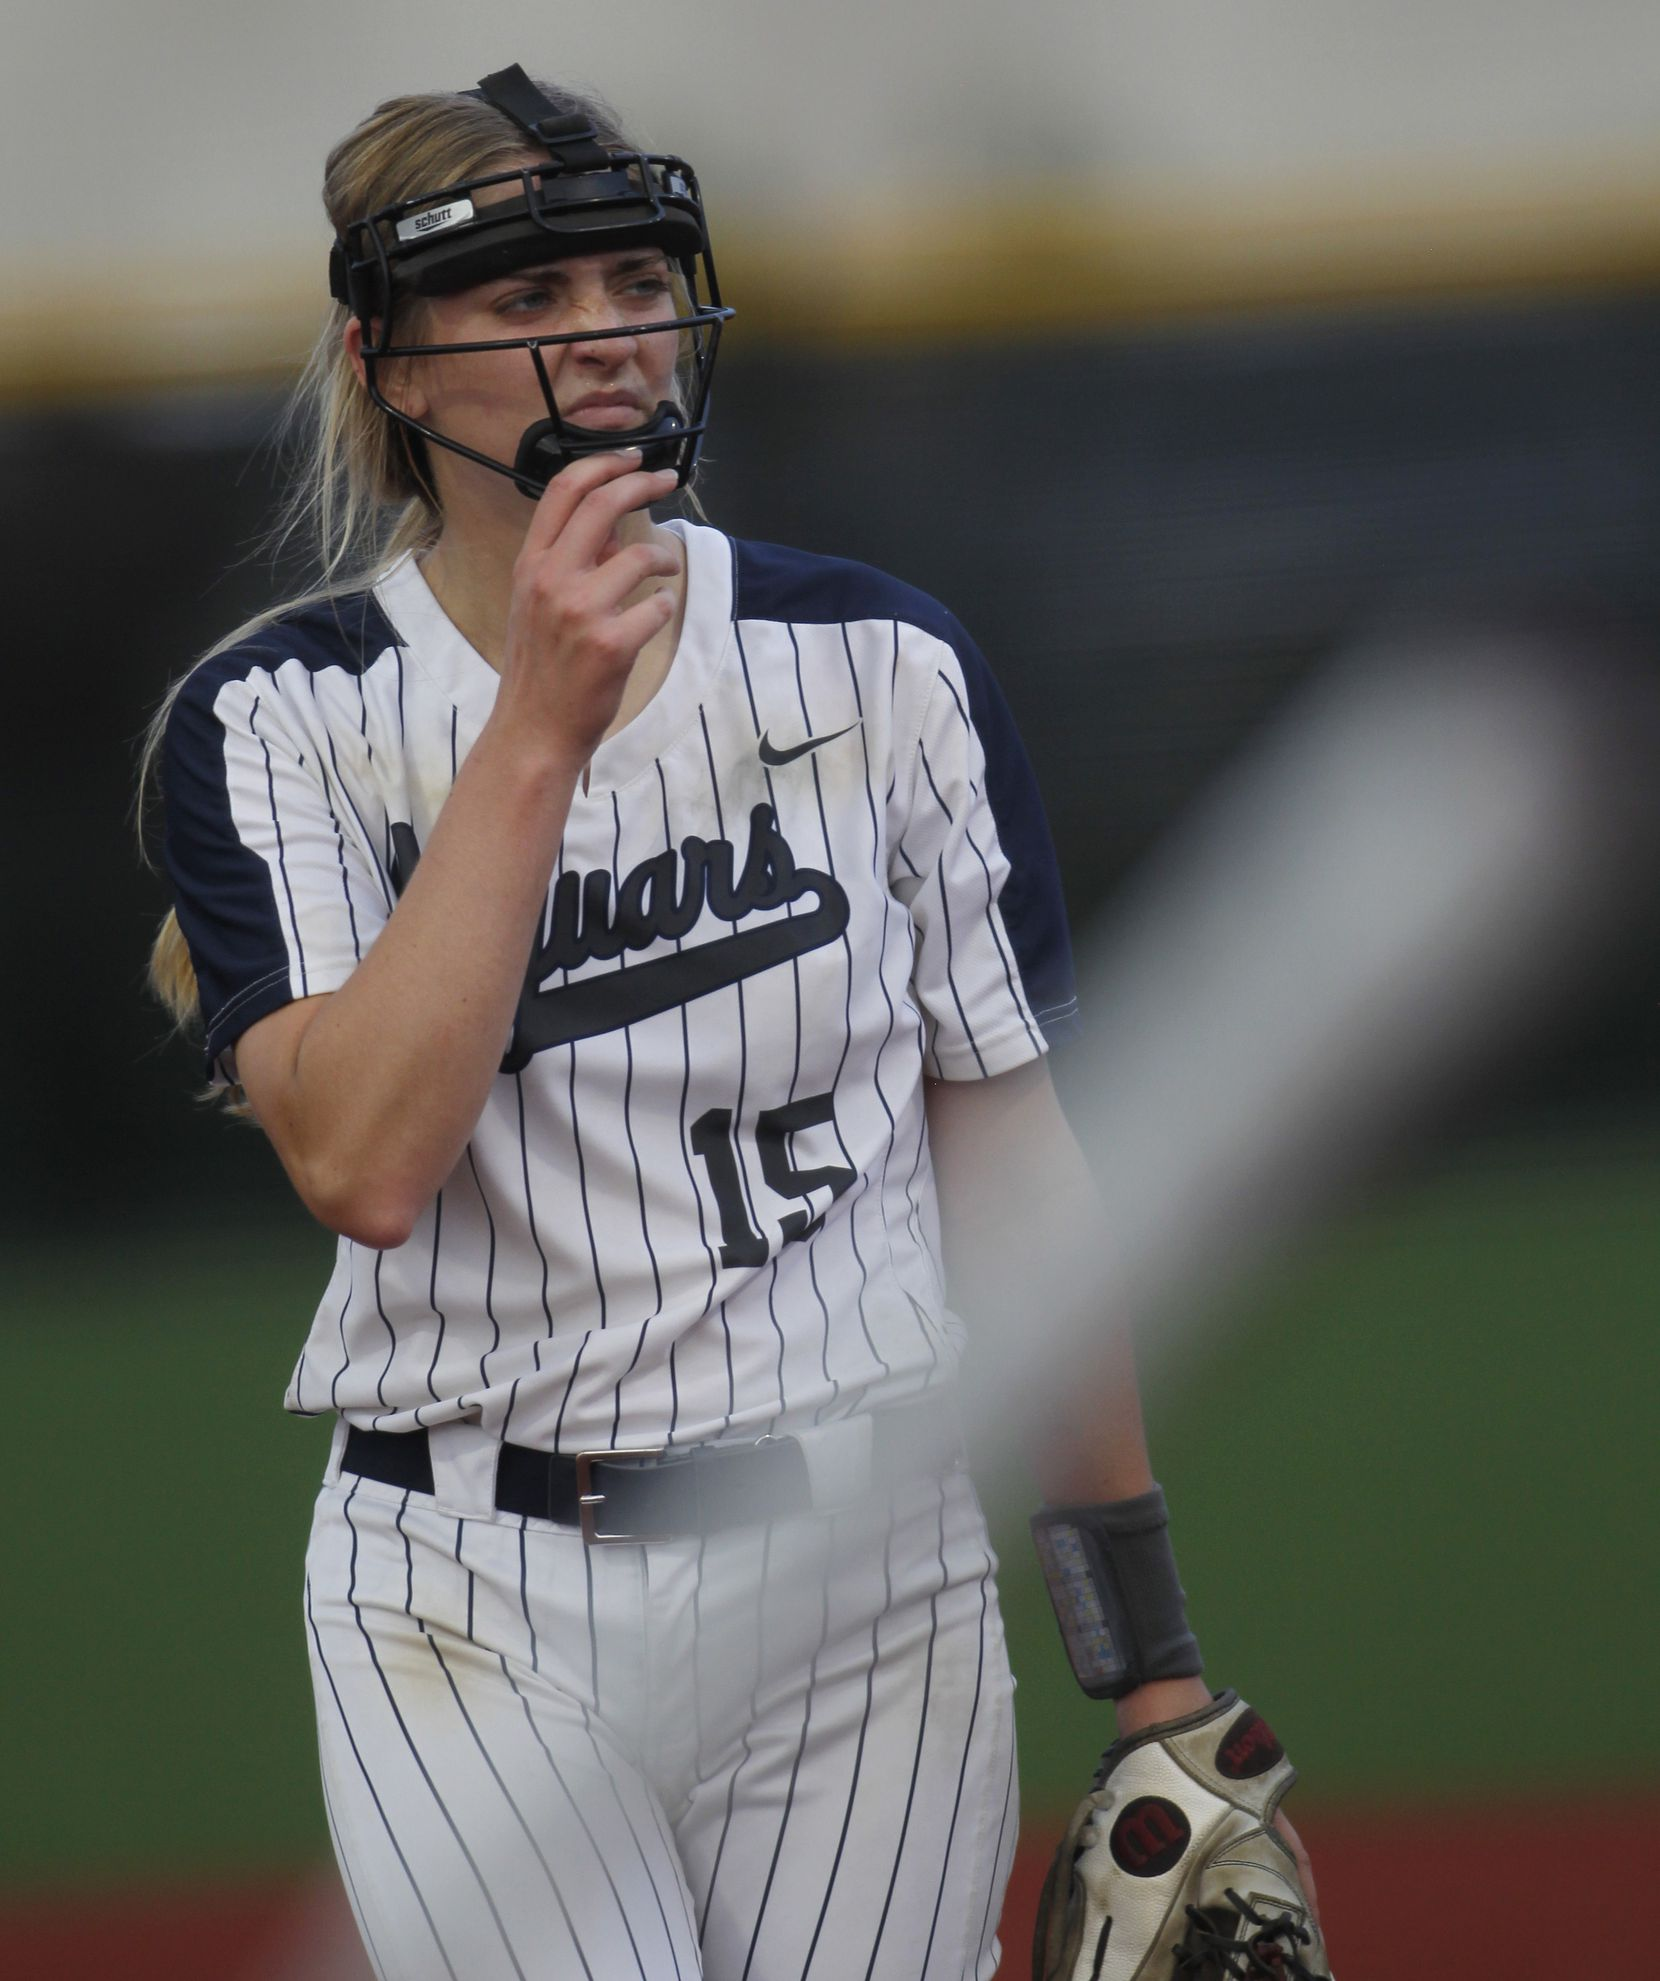 Flower Mound pitcher Landrie Harris (15) reacts after delivering a pitch to a Deer Park batter during the bottom of the 4th inning of play. The two teams played their UIL 6A state softball semifinal game at Leander Glenn High School in Leander on June 4, 2021. (Steve Hamm/ Special Contributor)